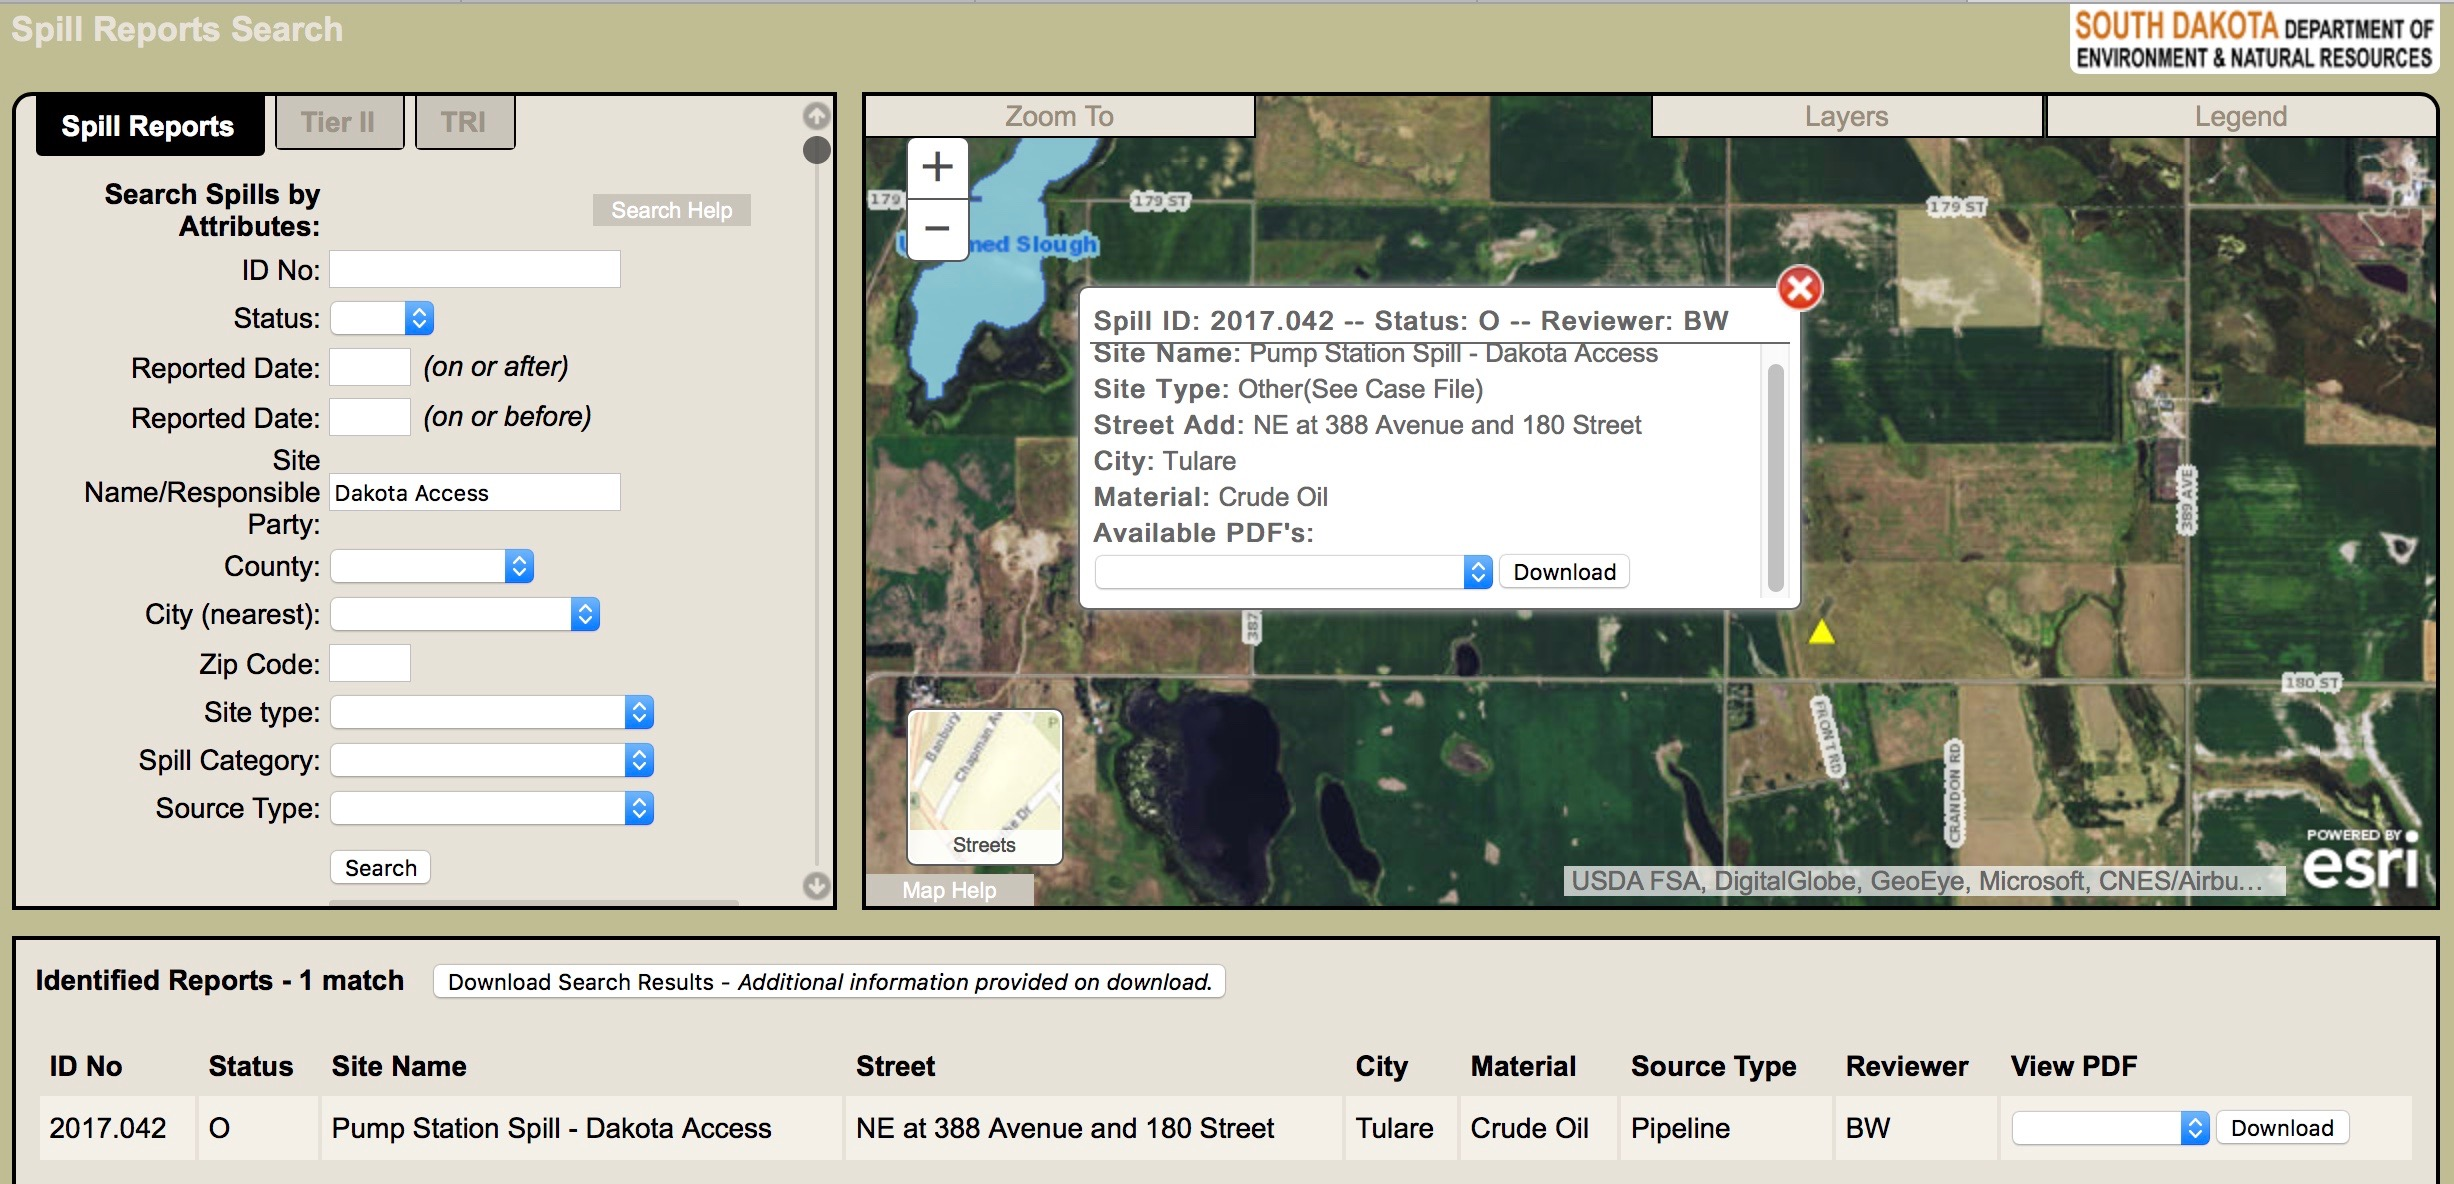 South dakota spink county doland - The Spill Database On The Website Of The South Dakota Department Of Environmental And Natural Resources Shows The Location Of The Dakota Access Pipeline